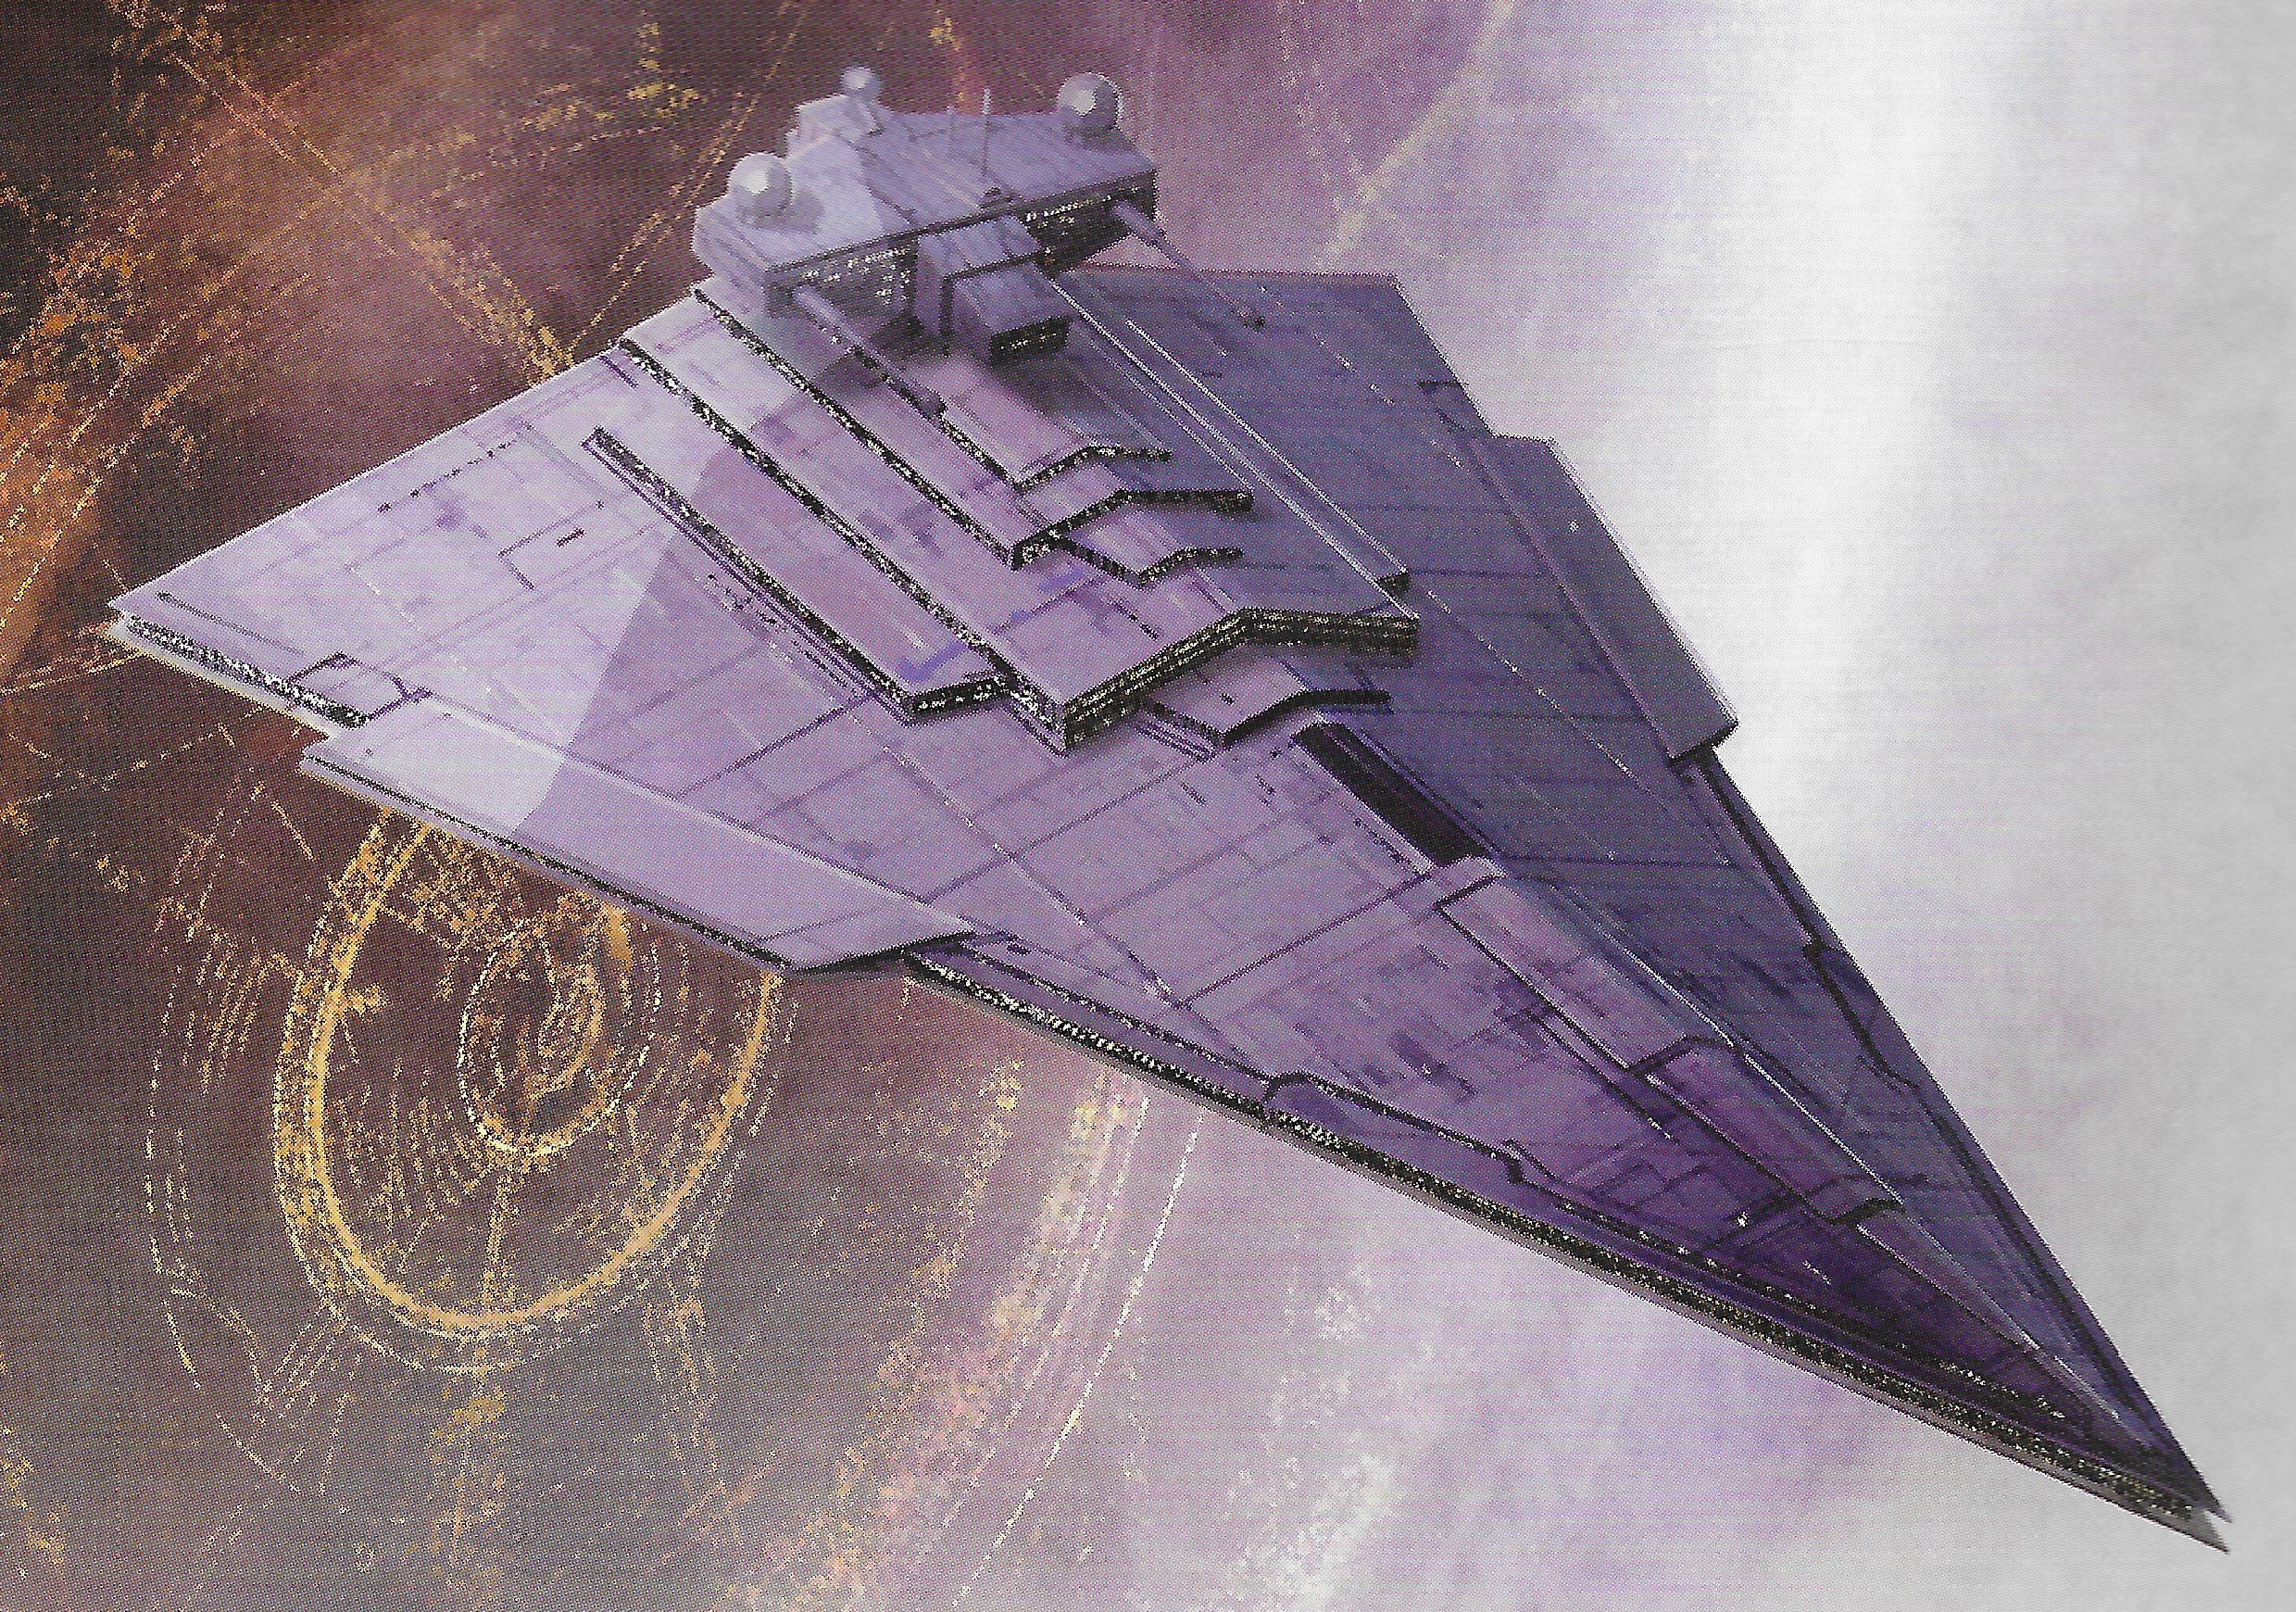 Victory II-class Star Destroyer/Legends